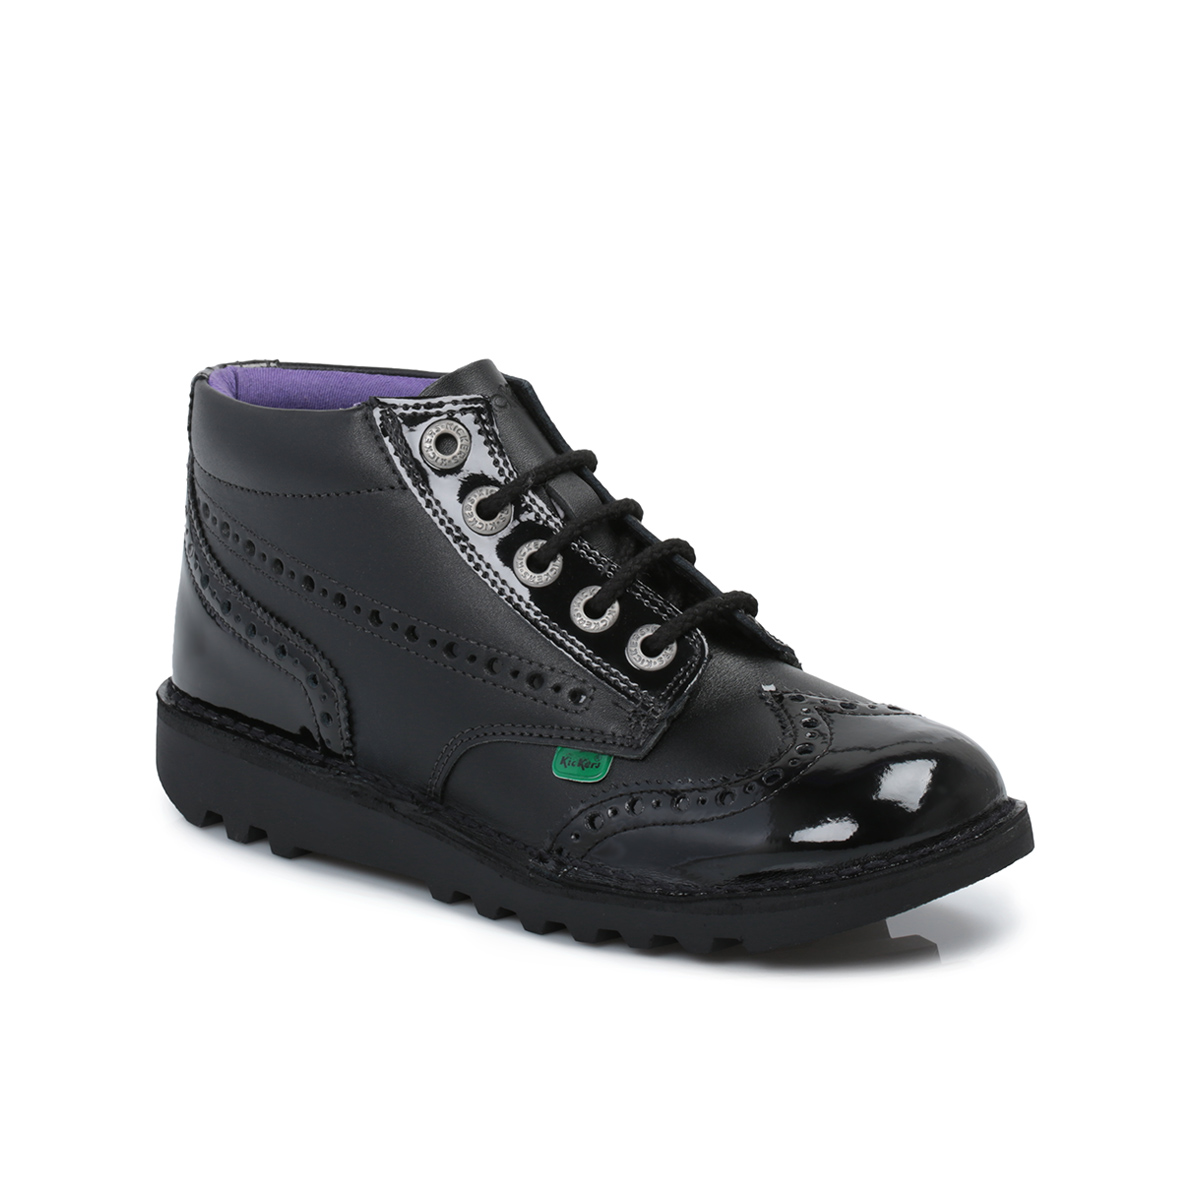 Kickers Kick Brogue Black Leather Youth Kids Boots Shoes ...